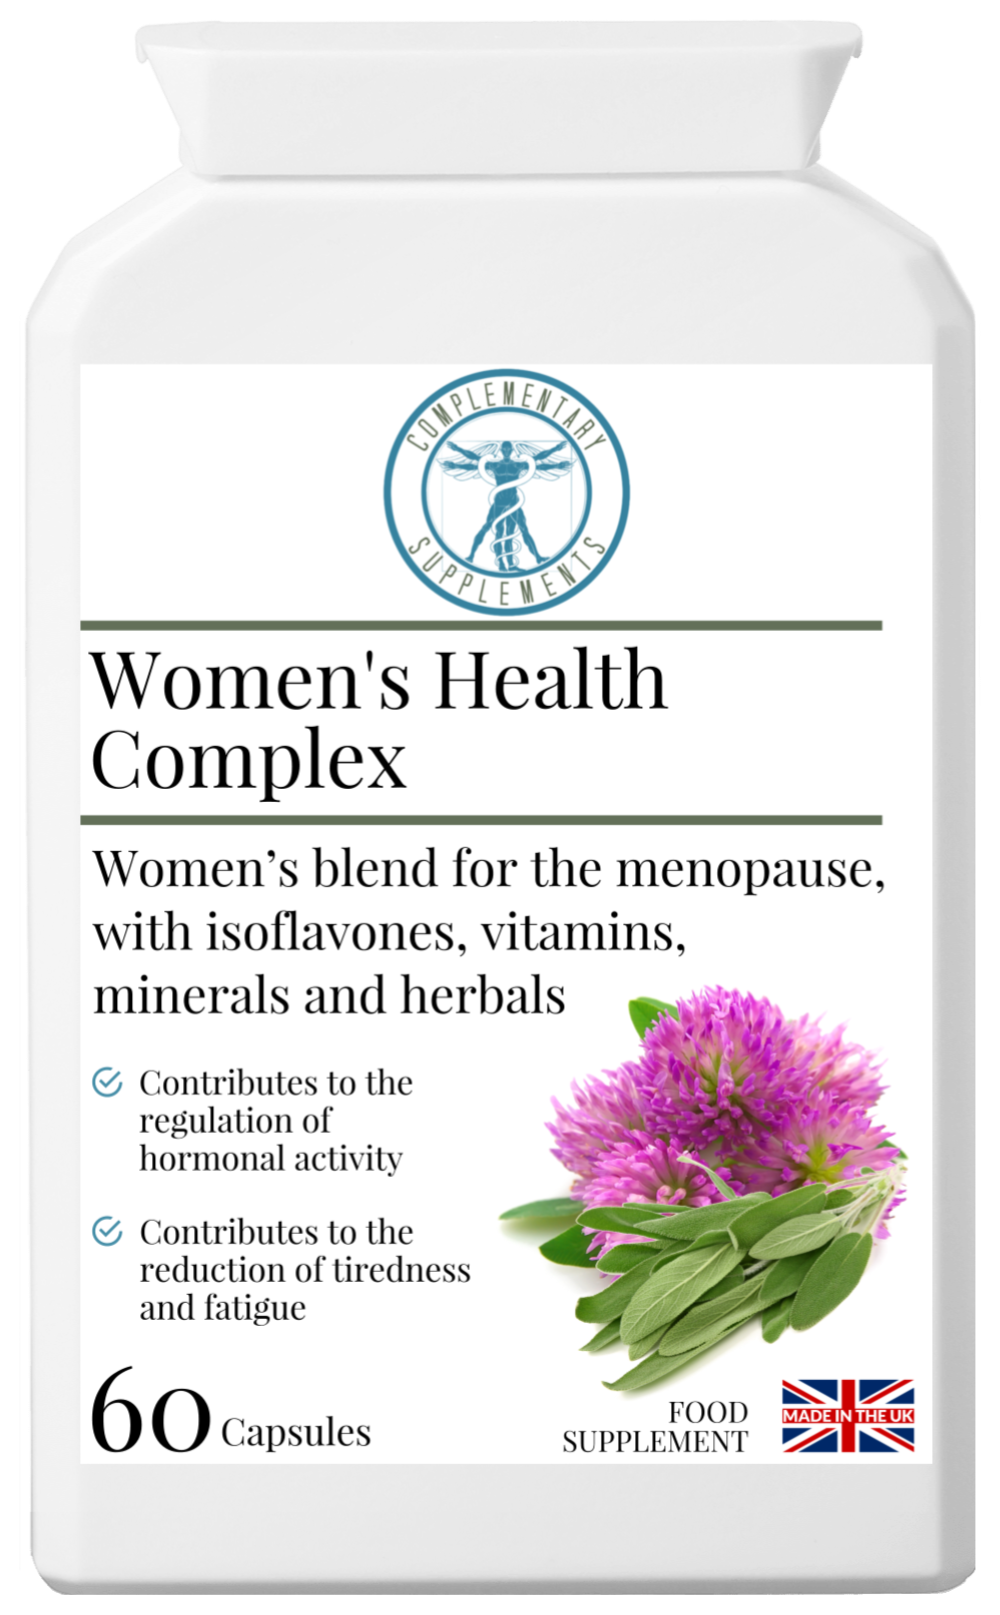 women's health complex herbal supplement for menopause